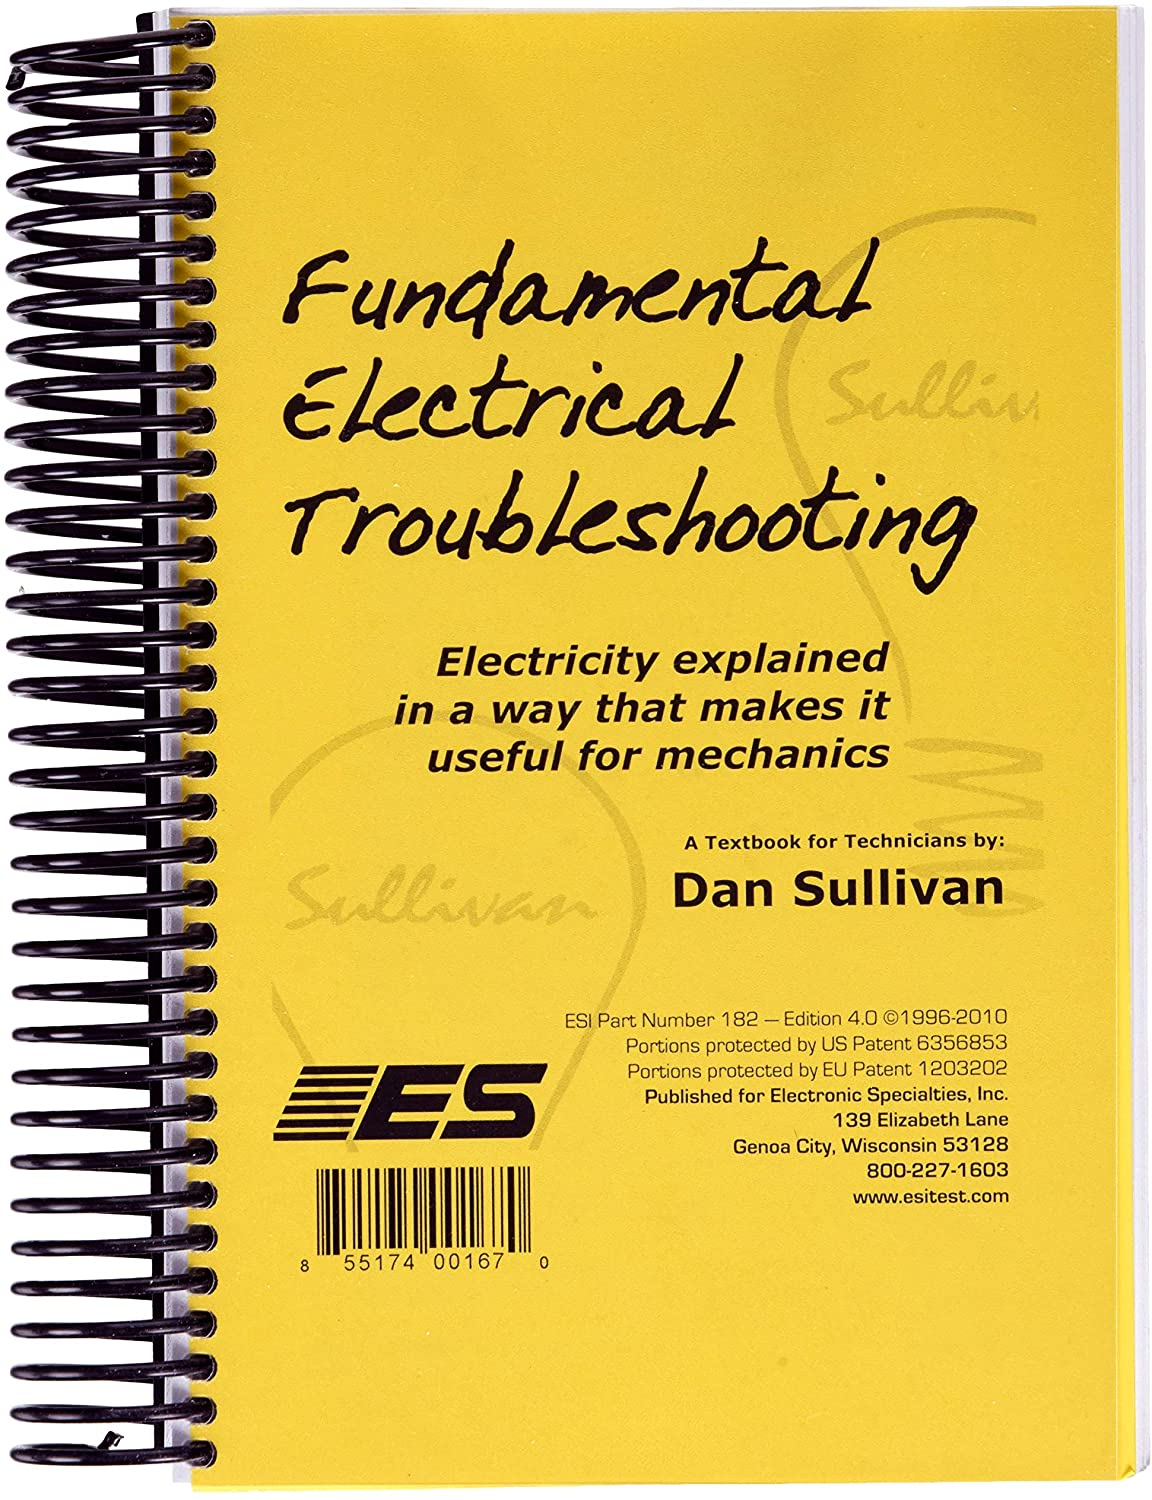 Electronic Specialties 182 Fundamental Electrical Troubleshooting Book